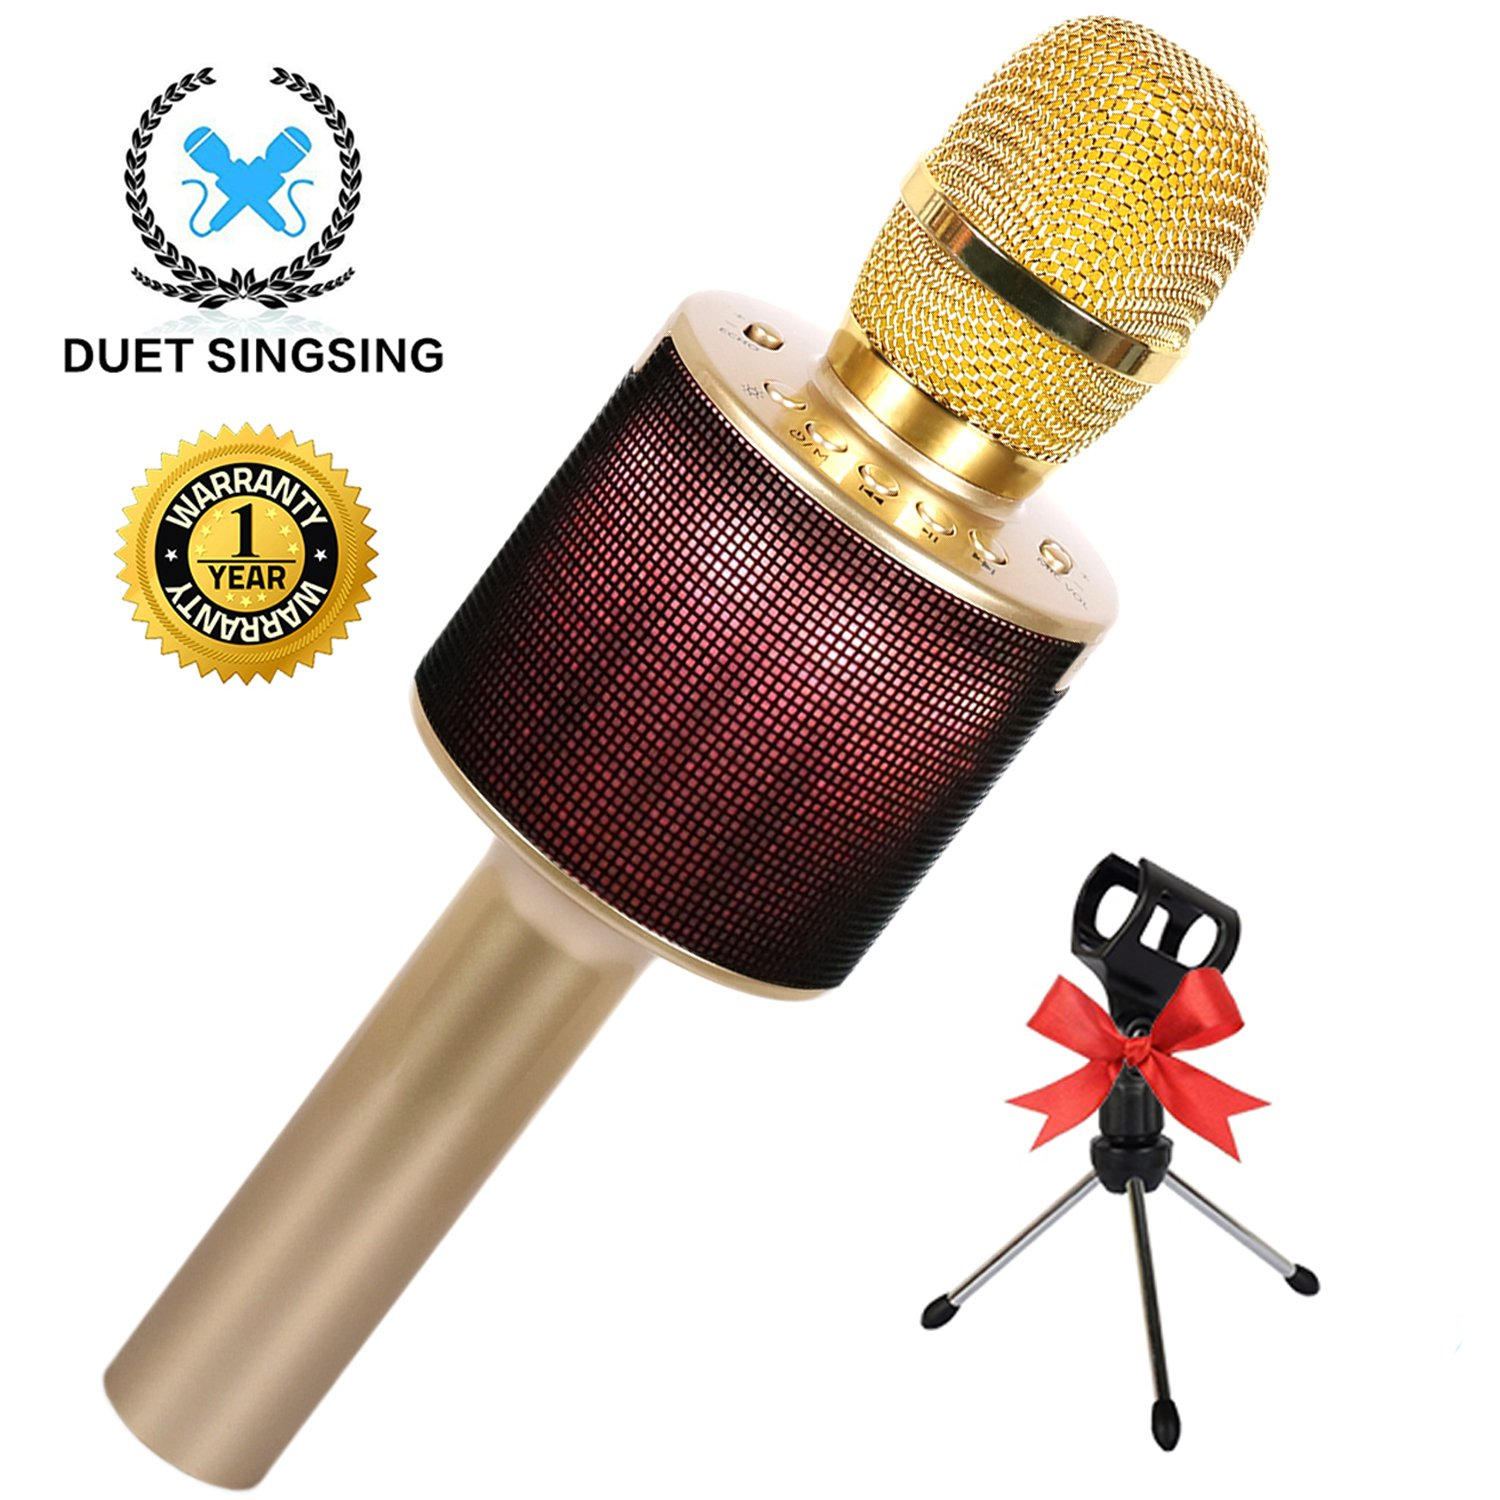 Karaoke Microphone Wireless with Bluetooth Speaker for iPhone Android PC Smartphone Portable Handheld Microphone for Singing Recording Interviews or Kids Home KTV Party - Black Gaobige